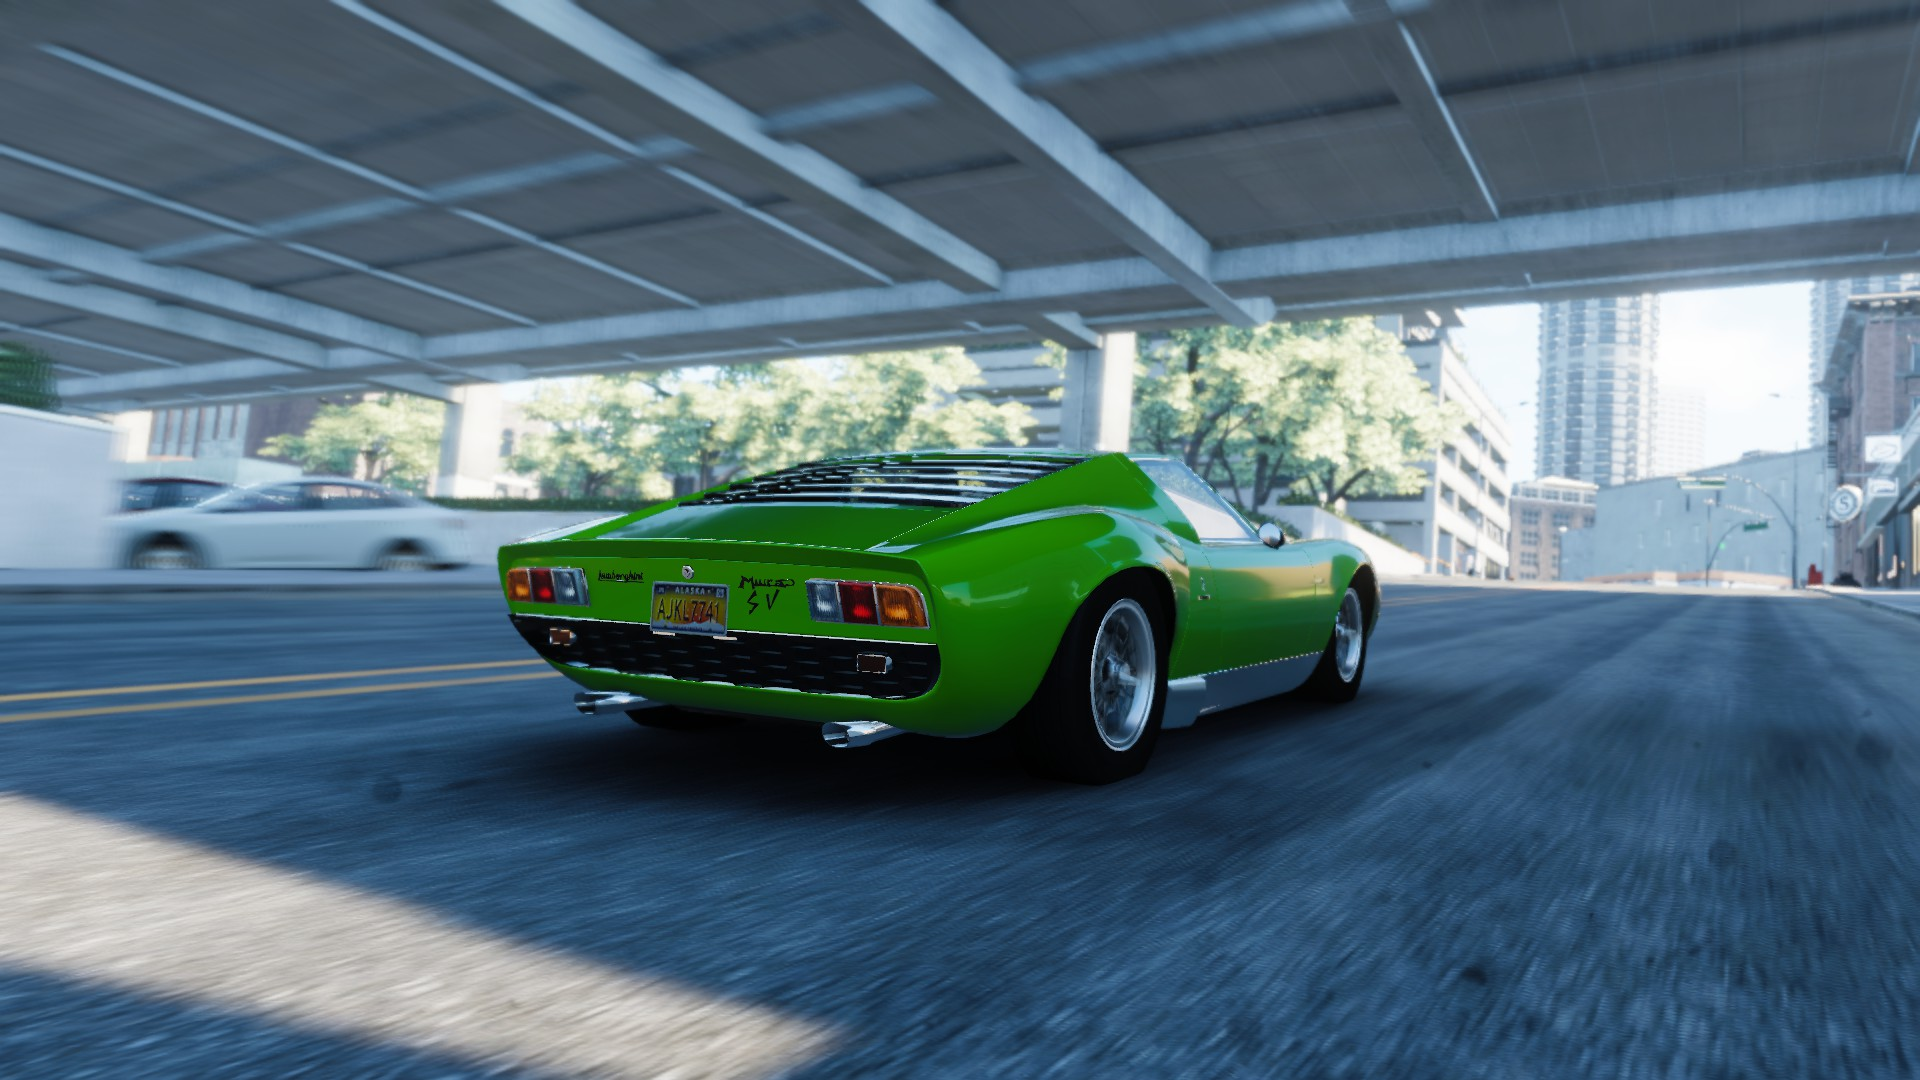 Lamborghini Miura Sv The Crew Wiki Fandom Powered By Wikia